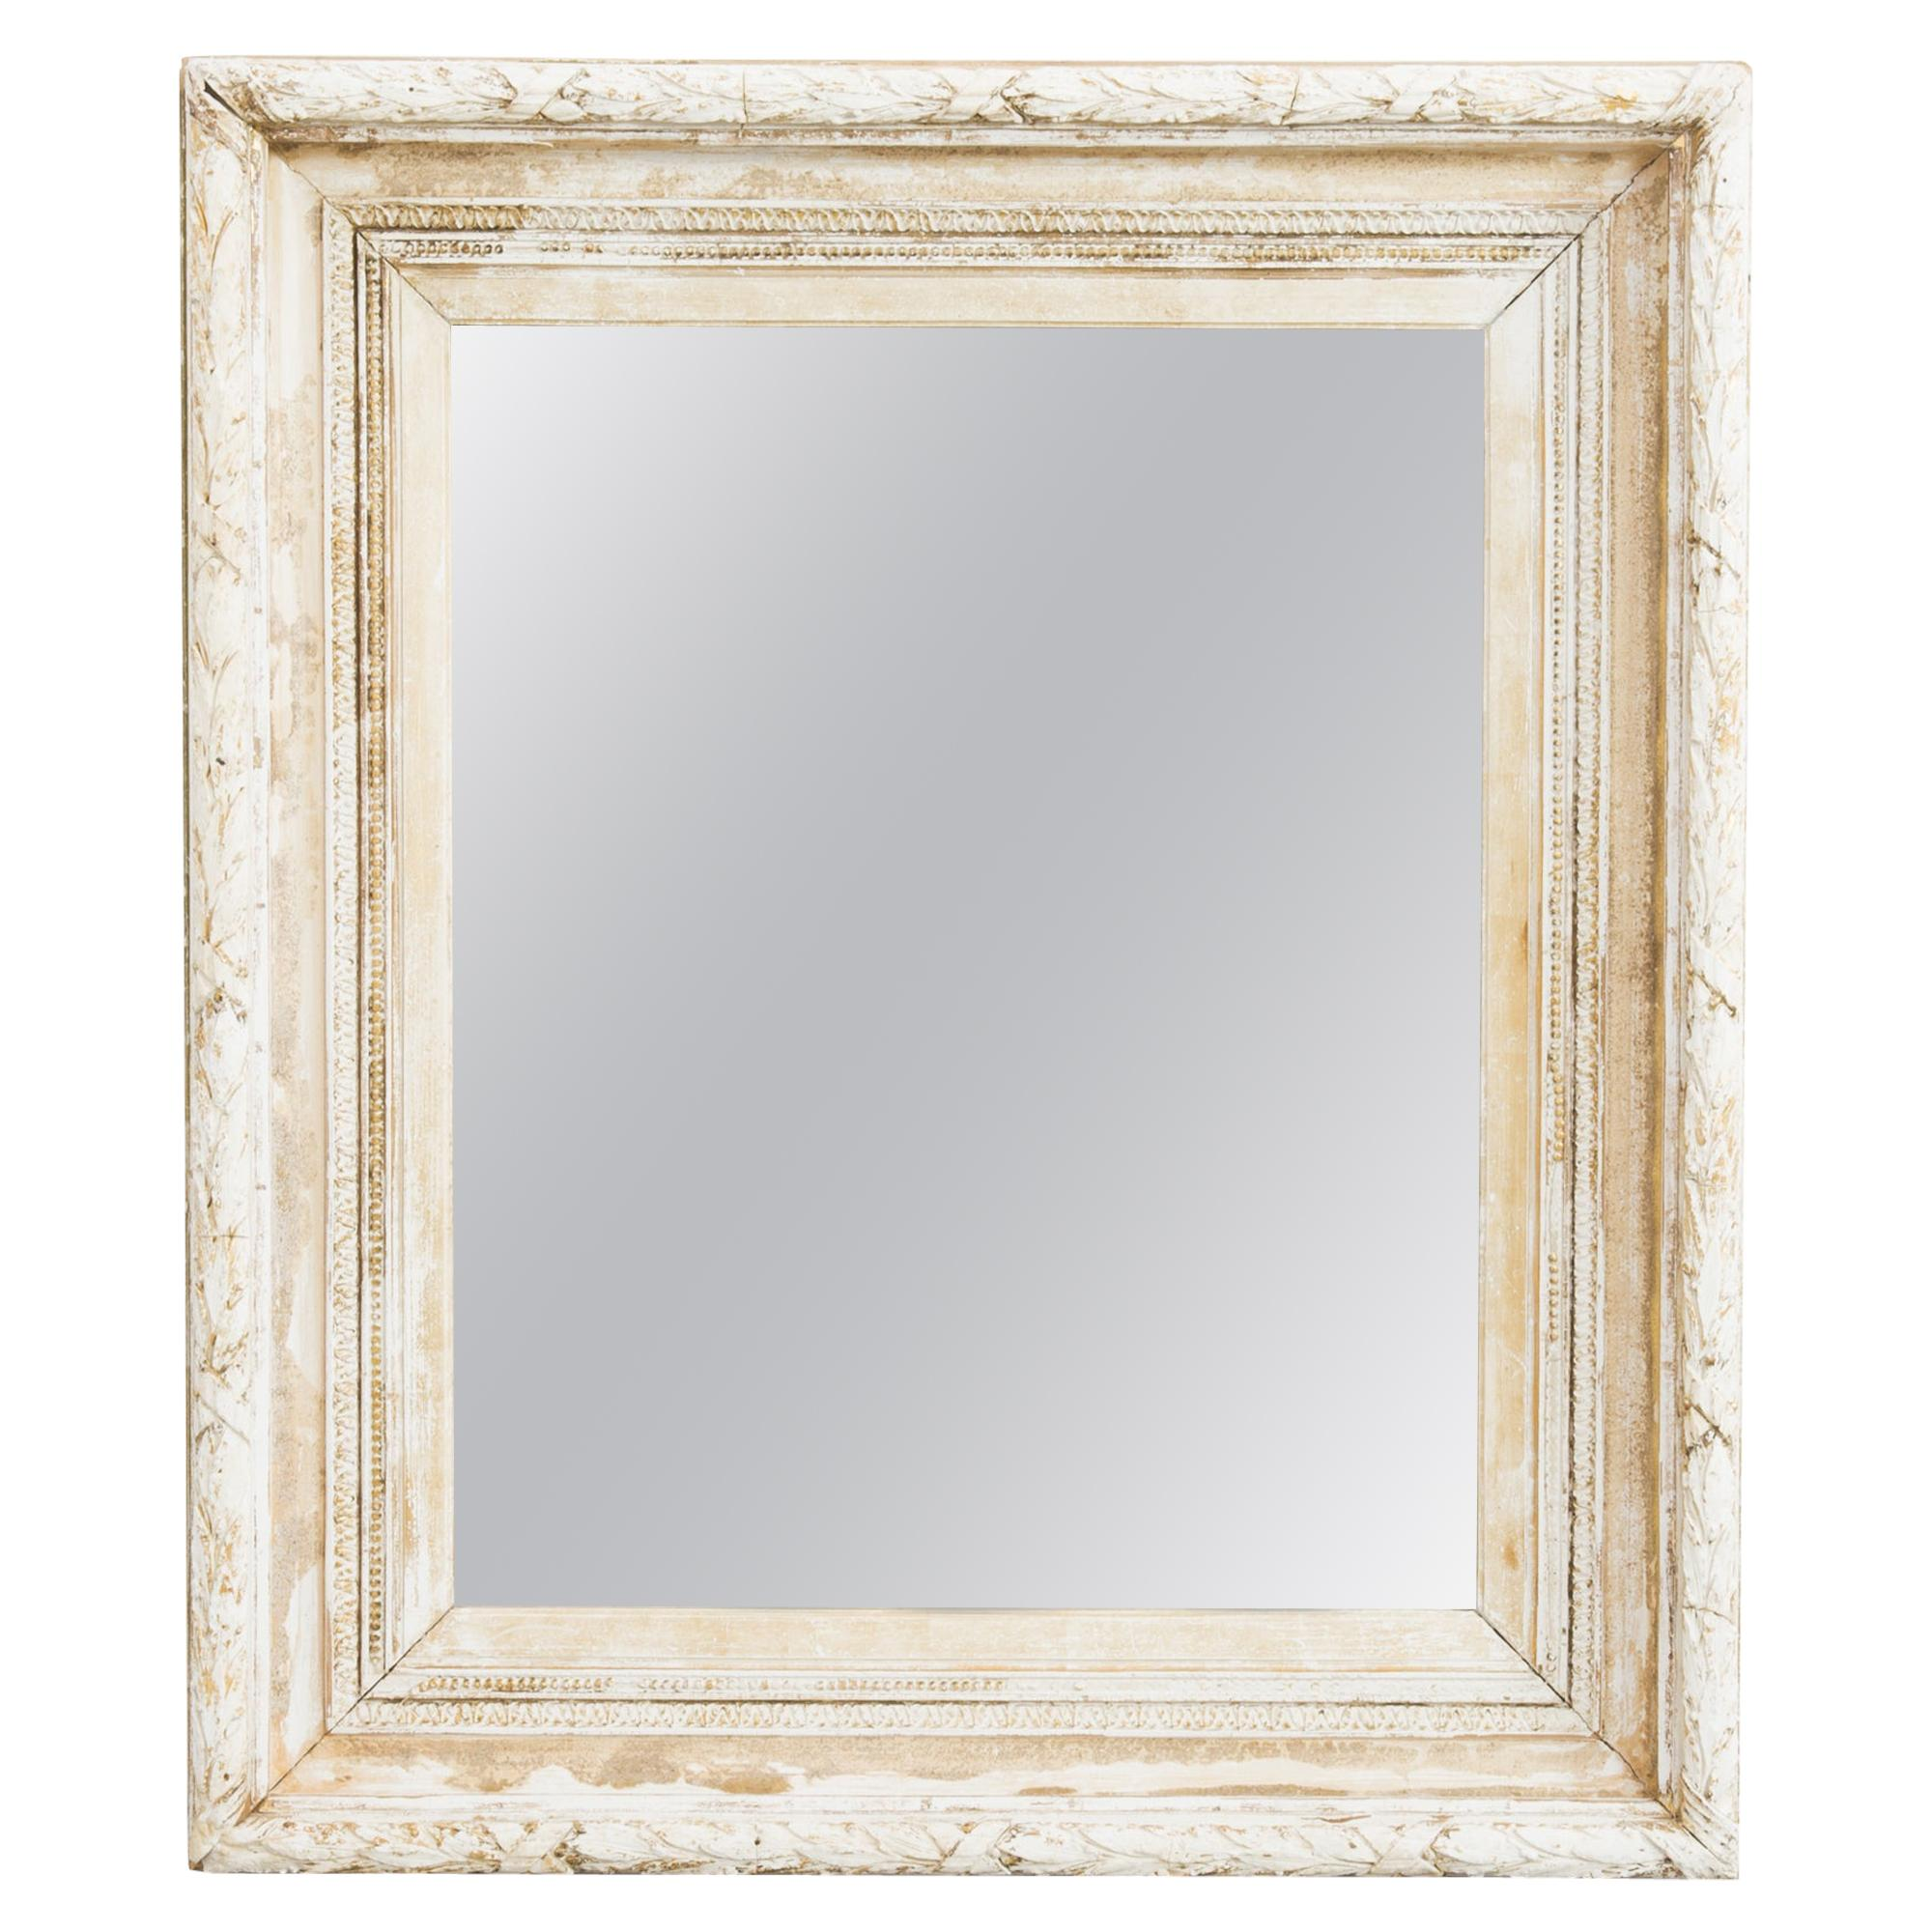 1880s French Giltwood Mirror Frame